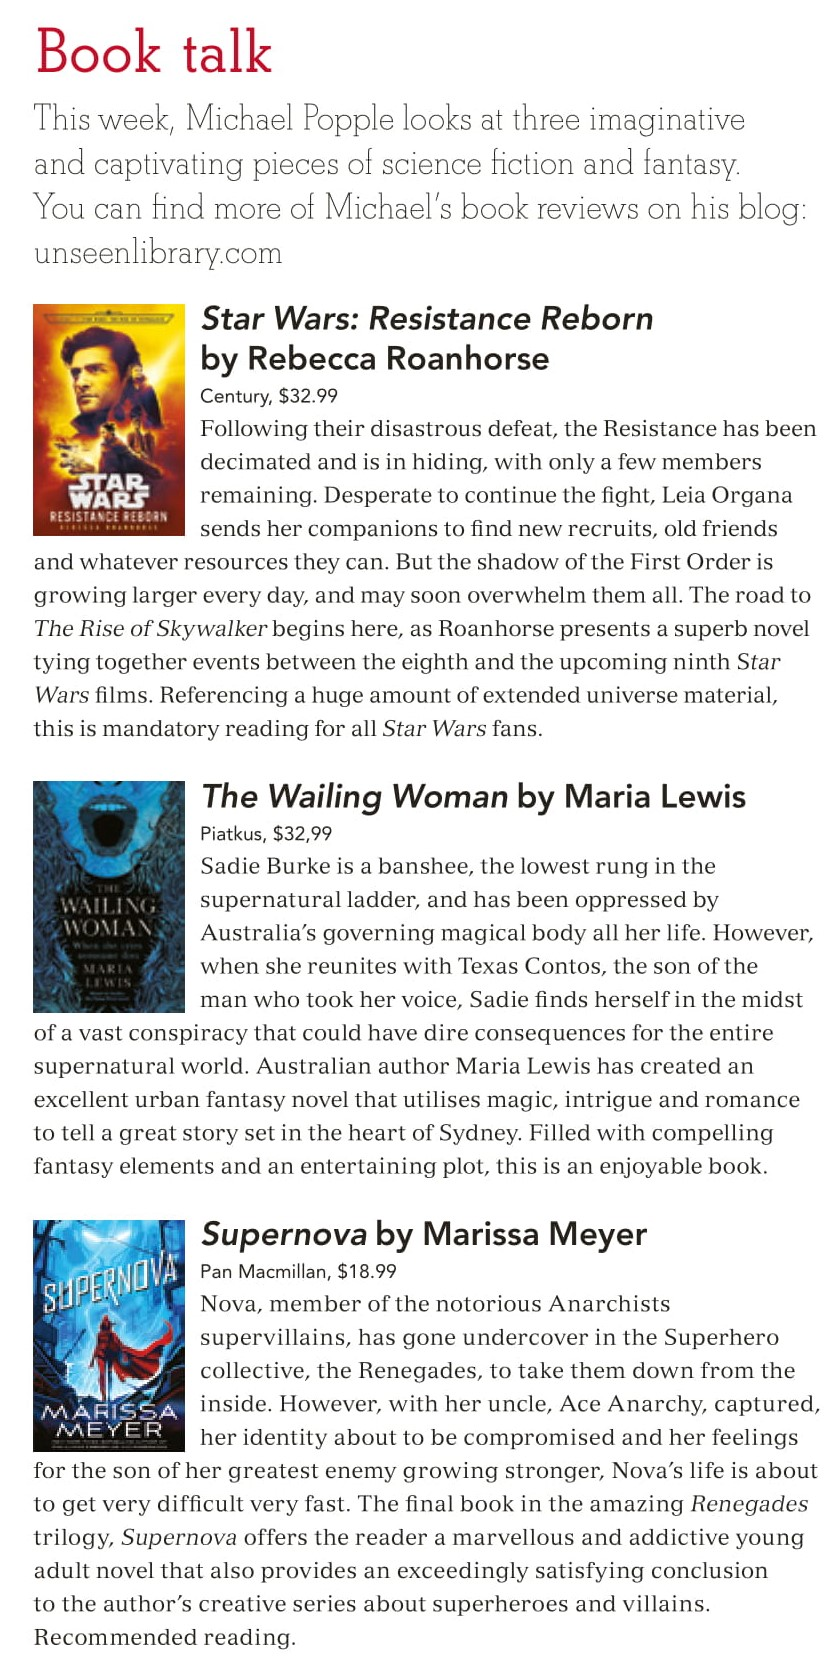 Canberra Weekly Column - 14 November 2019 - Fantasy and Science Fiction-1.jpg